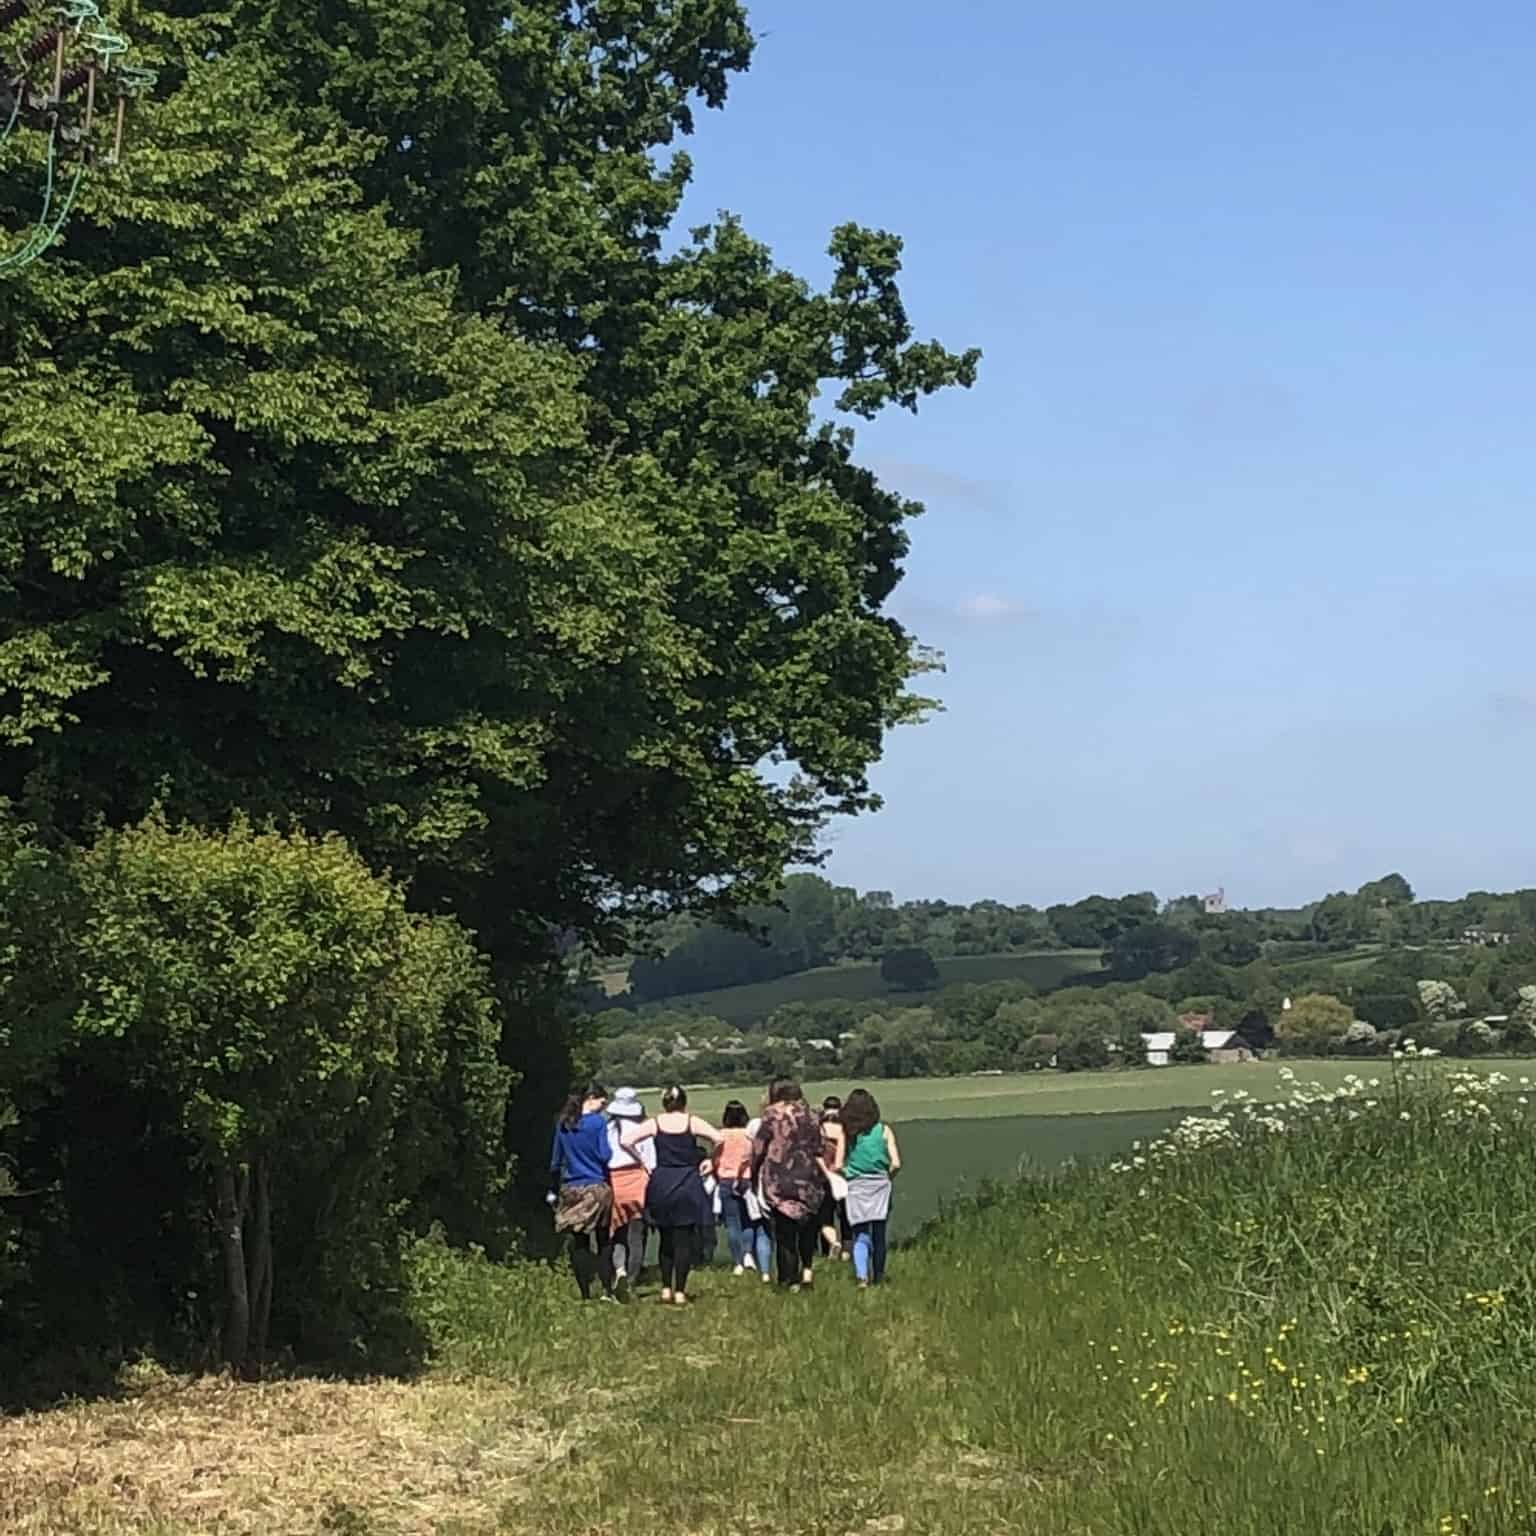 crowd walking in the kent countryside